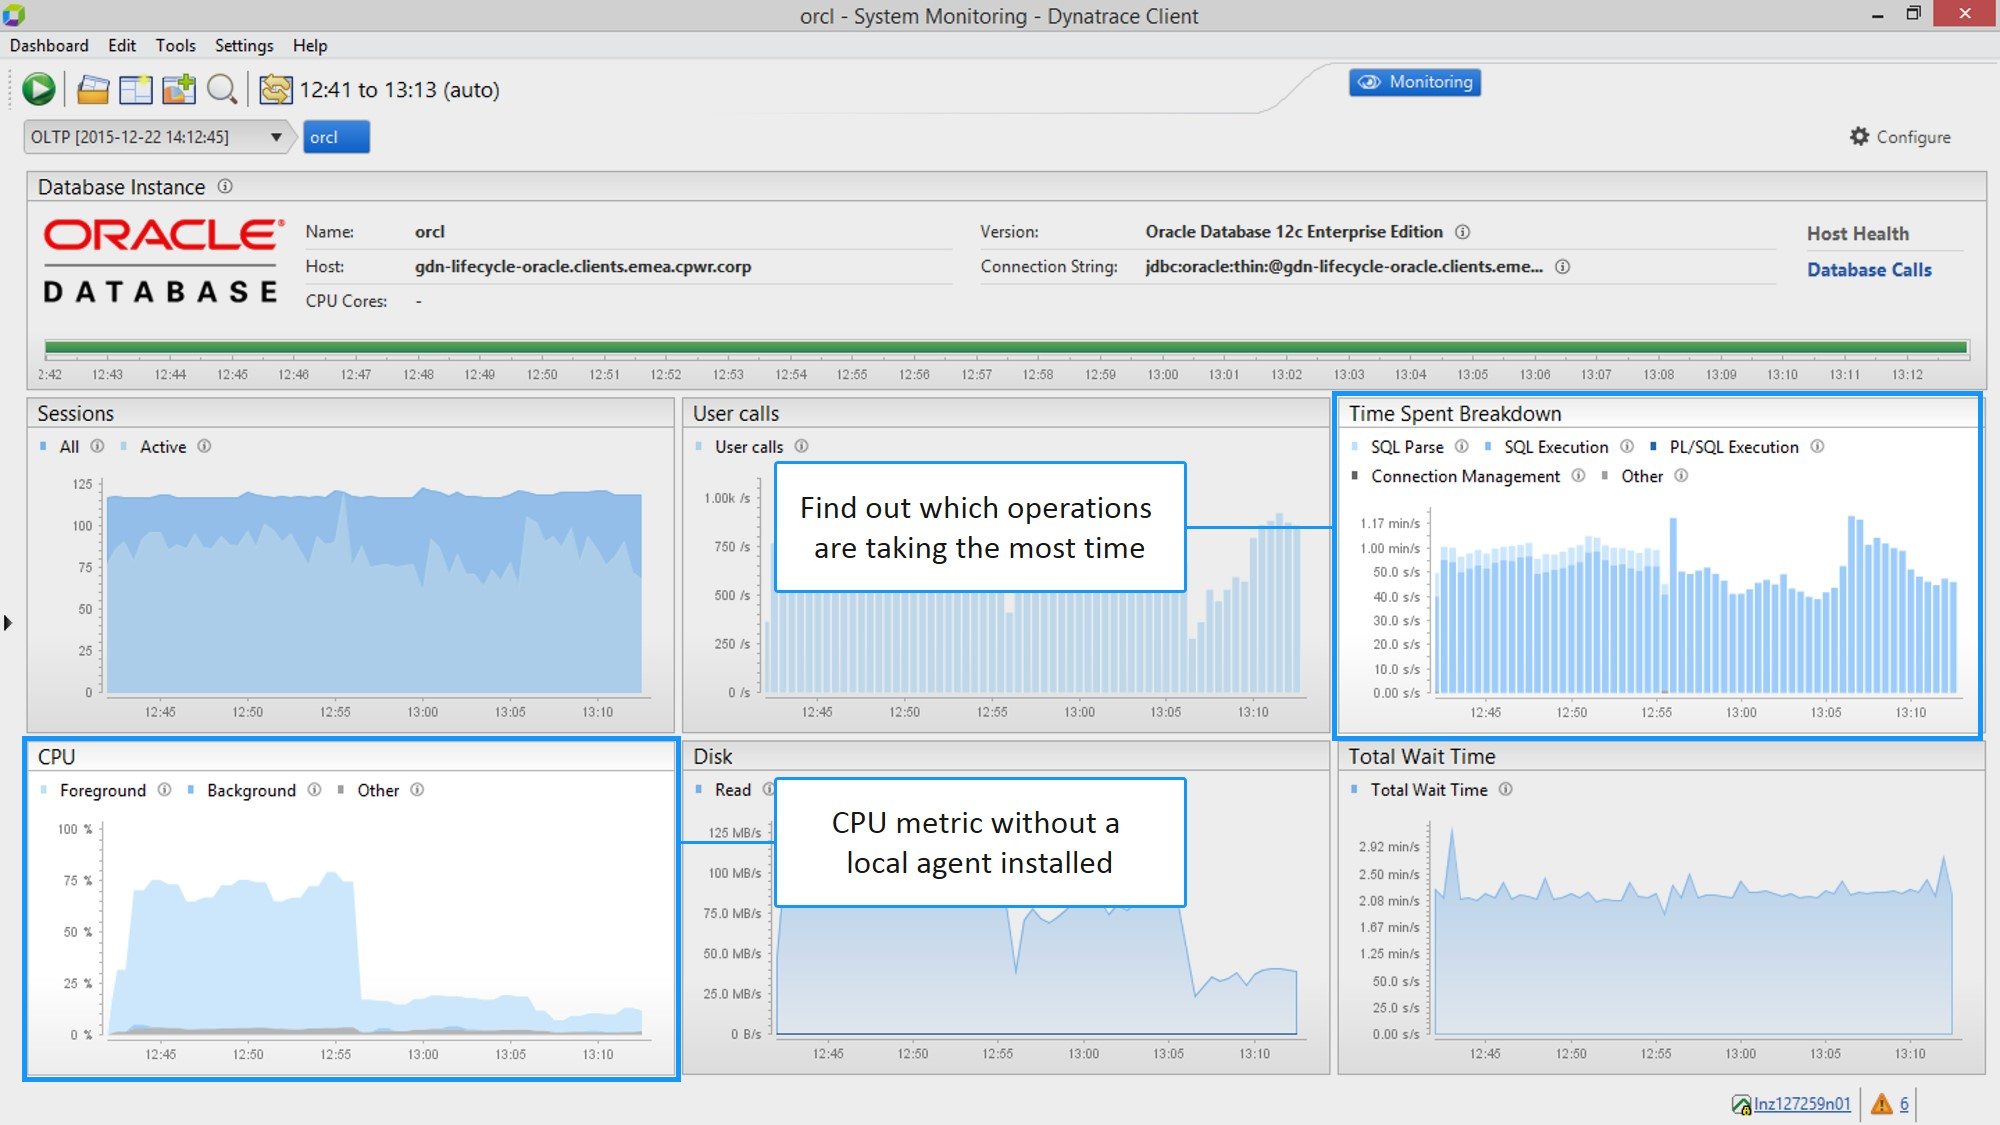 2. Find out which operations are taking the most time & see CPU metric without a local agent installed